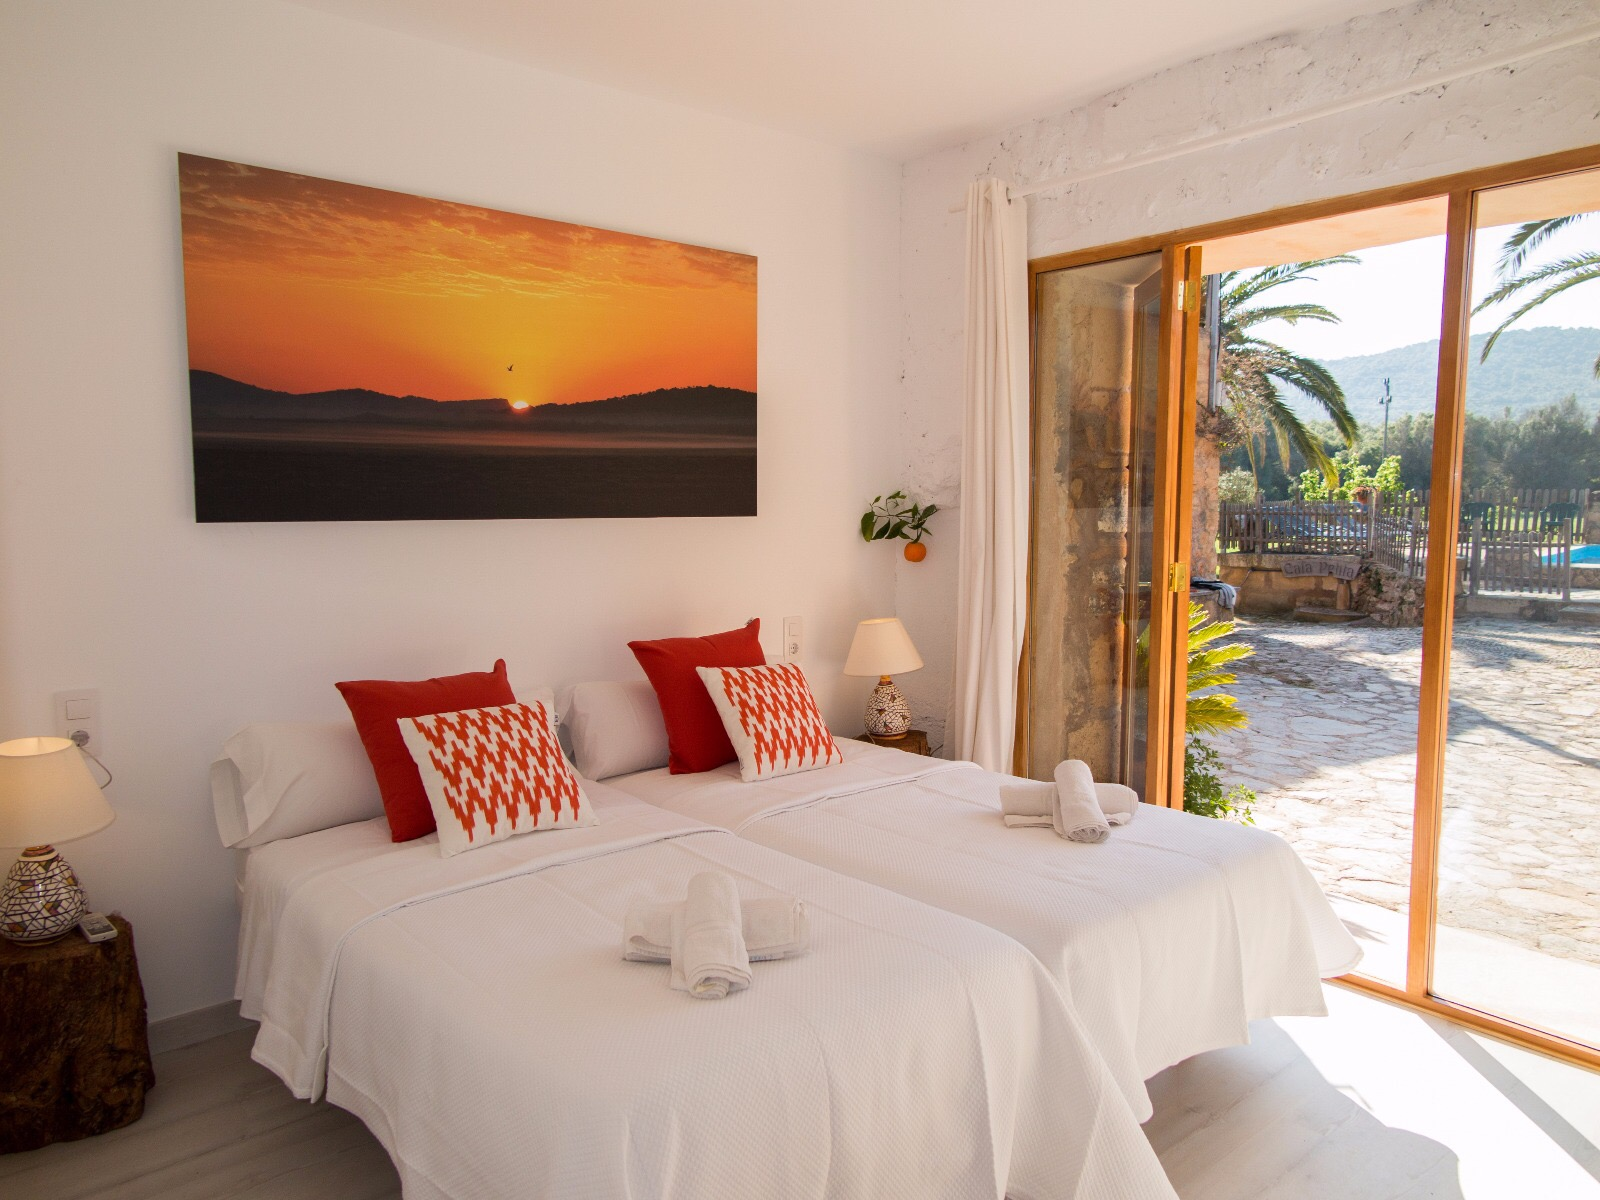 PACKAGE 2 - KING SIZE W/ PRIVATE BATH  Features: Private Bath, Ocean Views, Air Conditioning, Modern Suite, King Size Bed